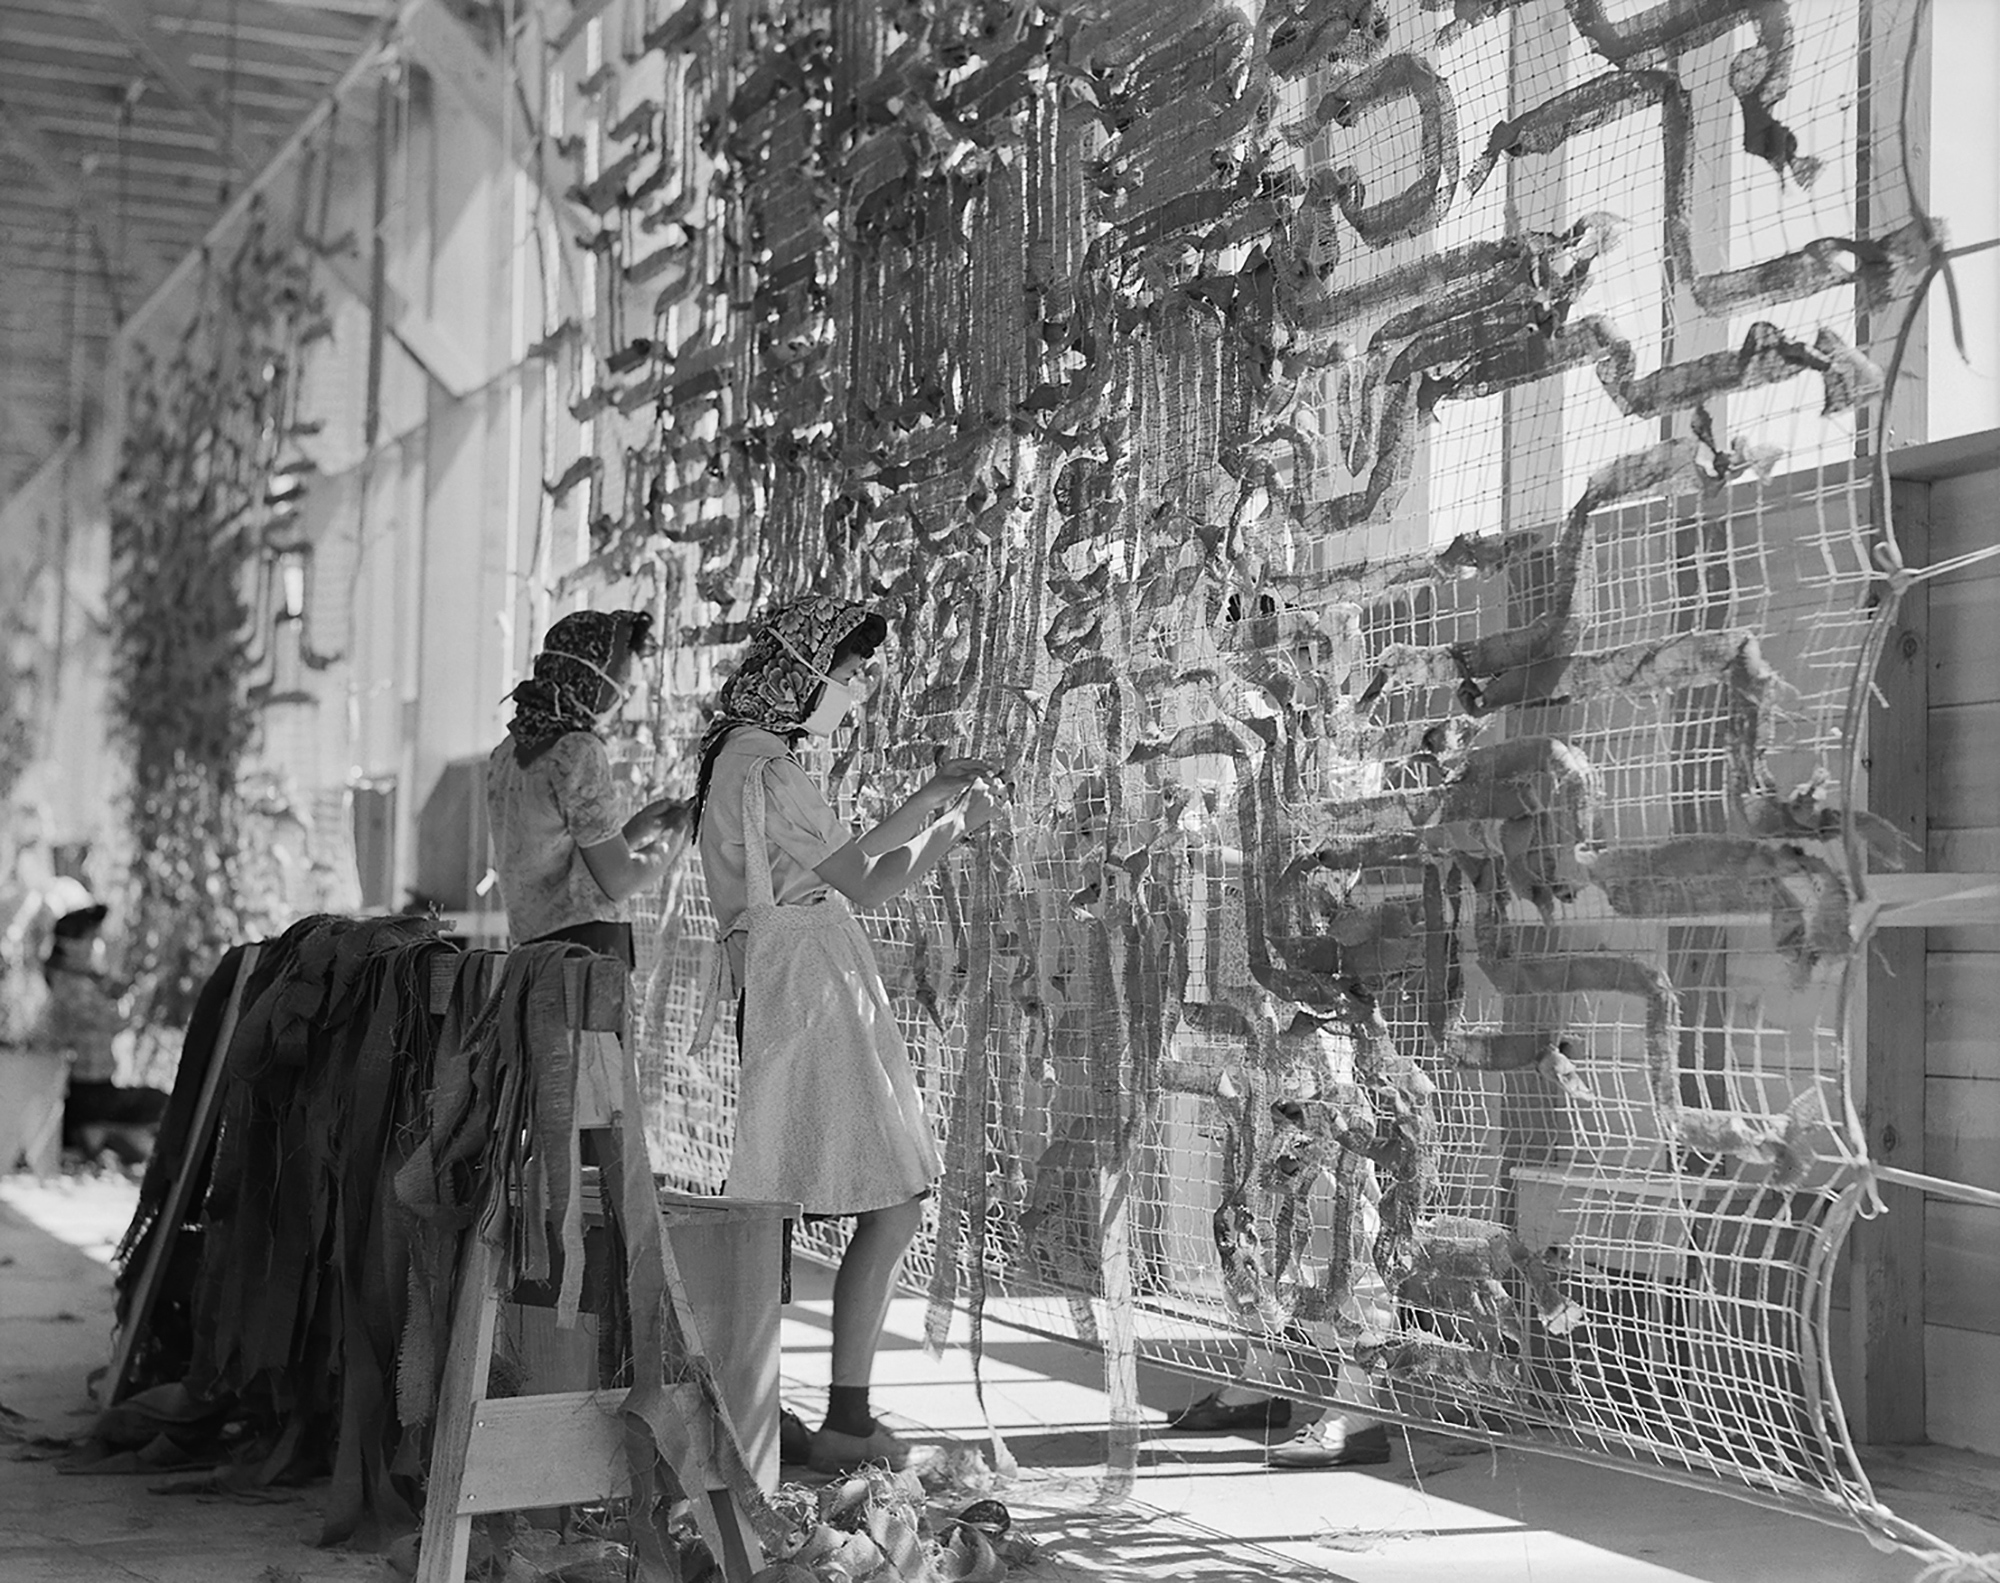 Manzanar Relocation Center, Manzanar, Calif. Making camouflage nets for the War Department. In 1942, Lange was commissioned to photograph the U.S. Government's imprisonment of Japanese Americans. Her negatives were impounded by the Army; she did not see them until 1964.